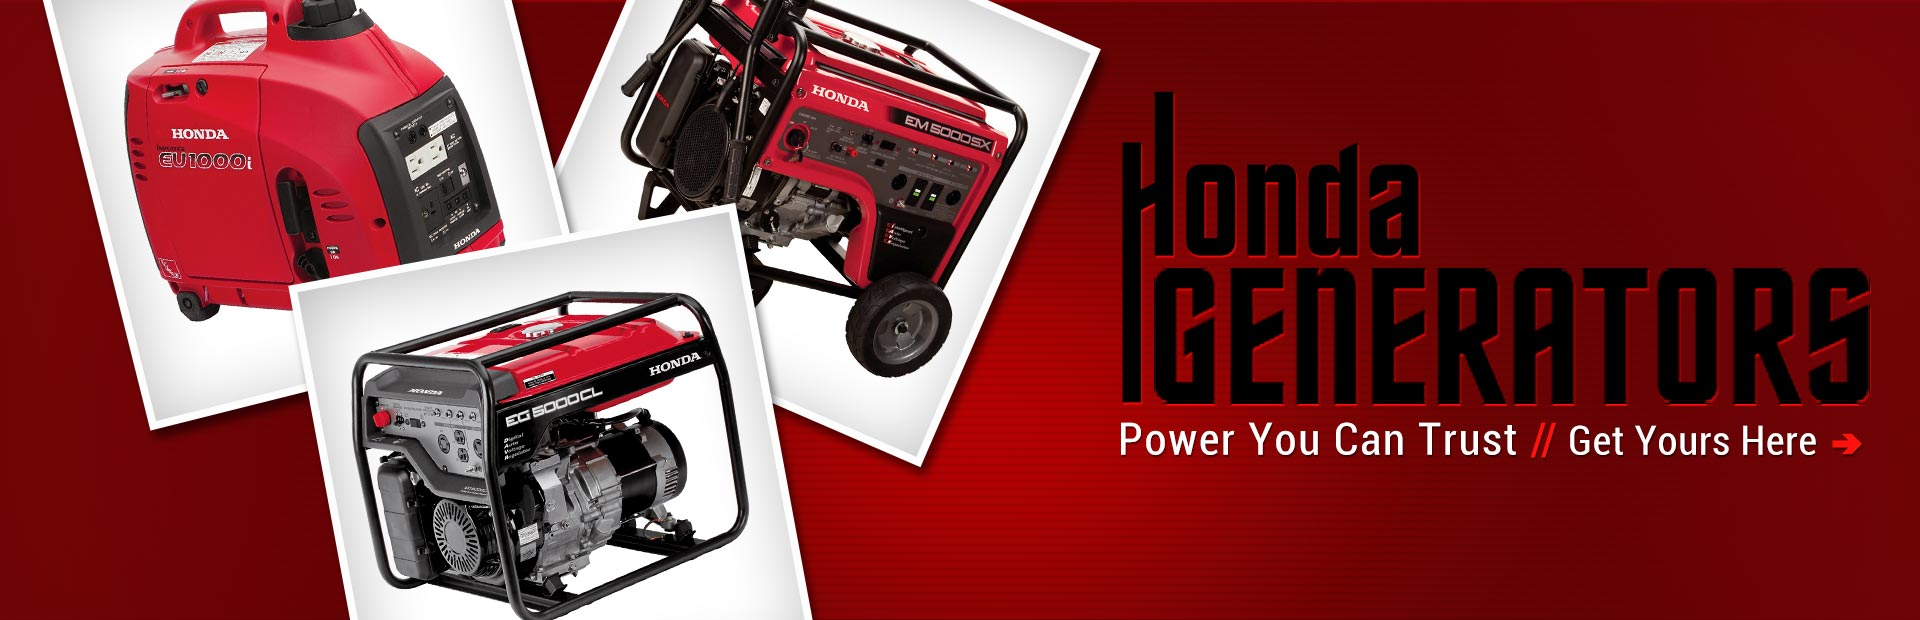 Wallers Power Equipment Plant City Fl 813 752 1066 Rear Engine Riding Mower On Honda Parts Diagram Toro Timecutter Mowers Click Here To View The Models Generators